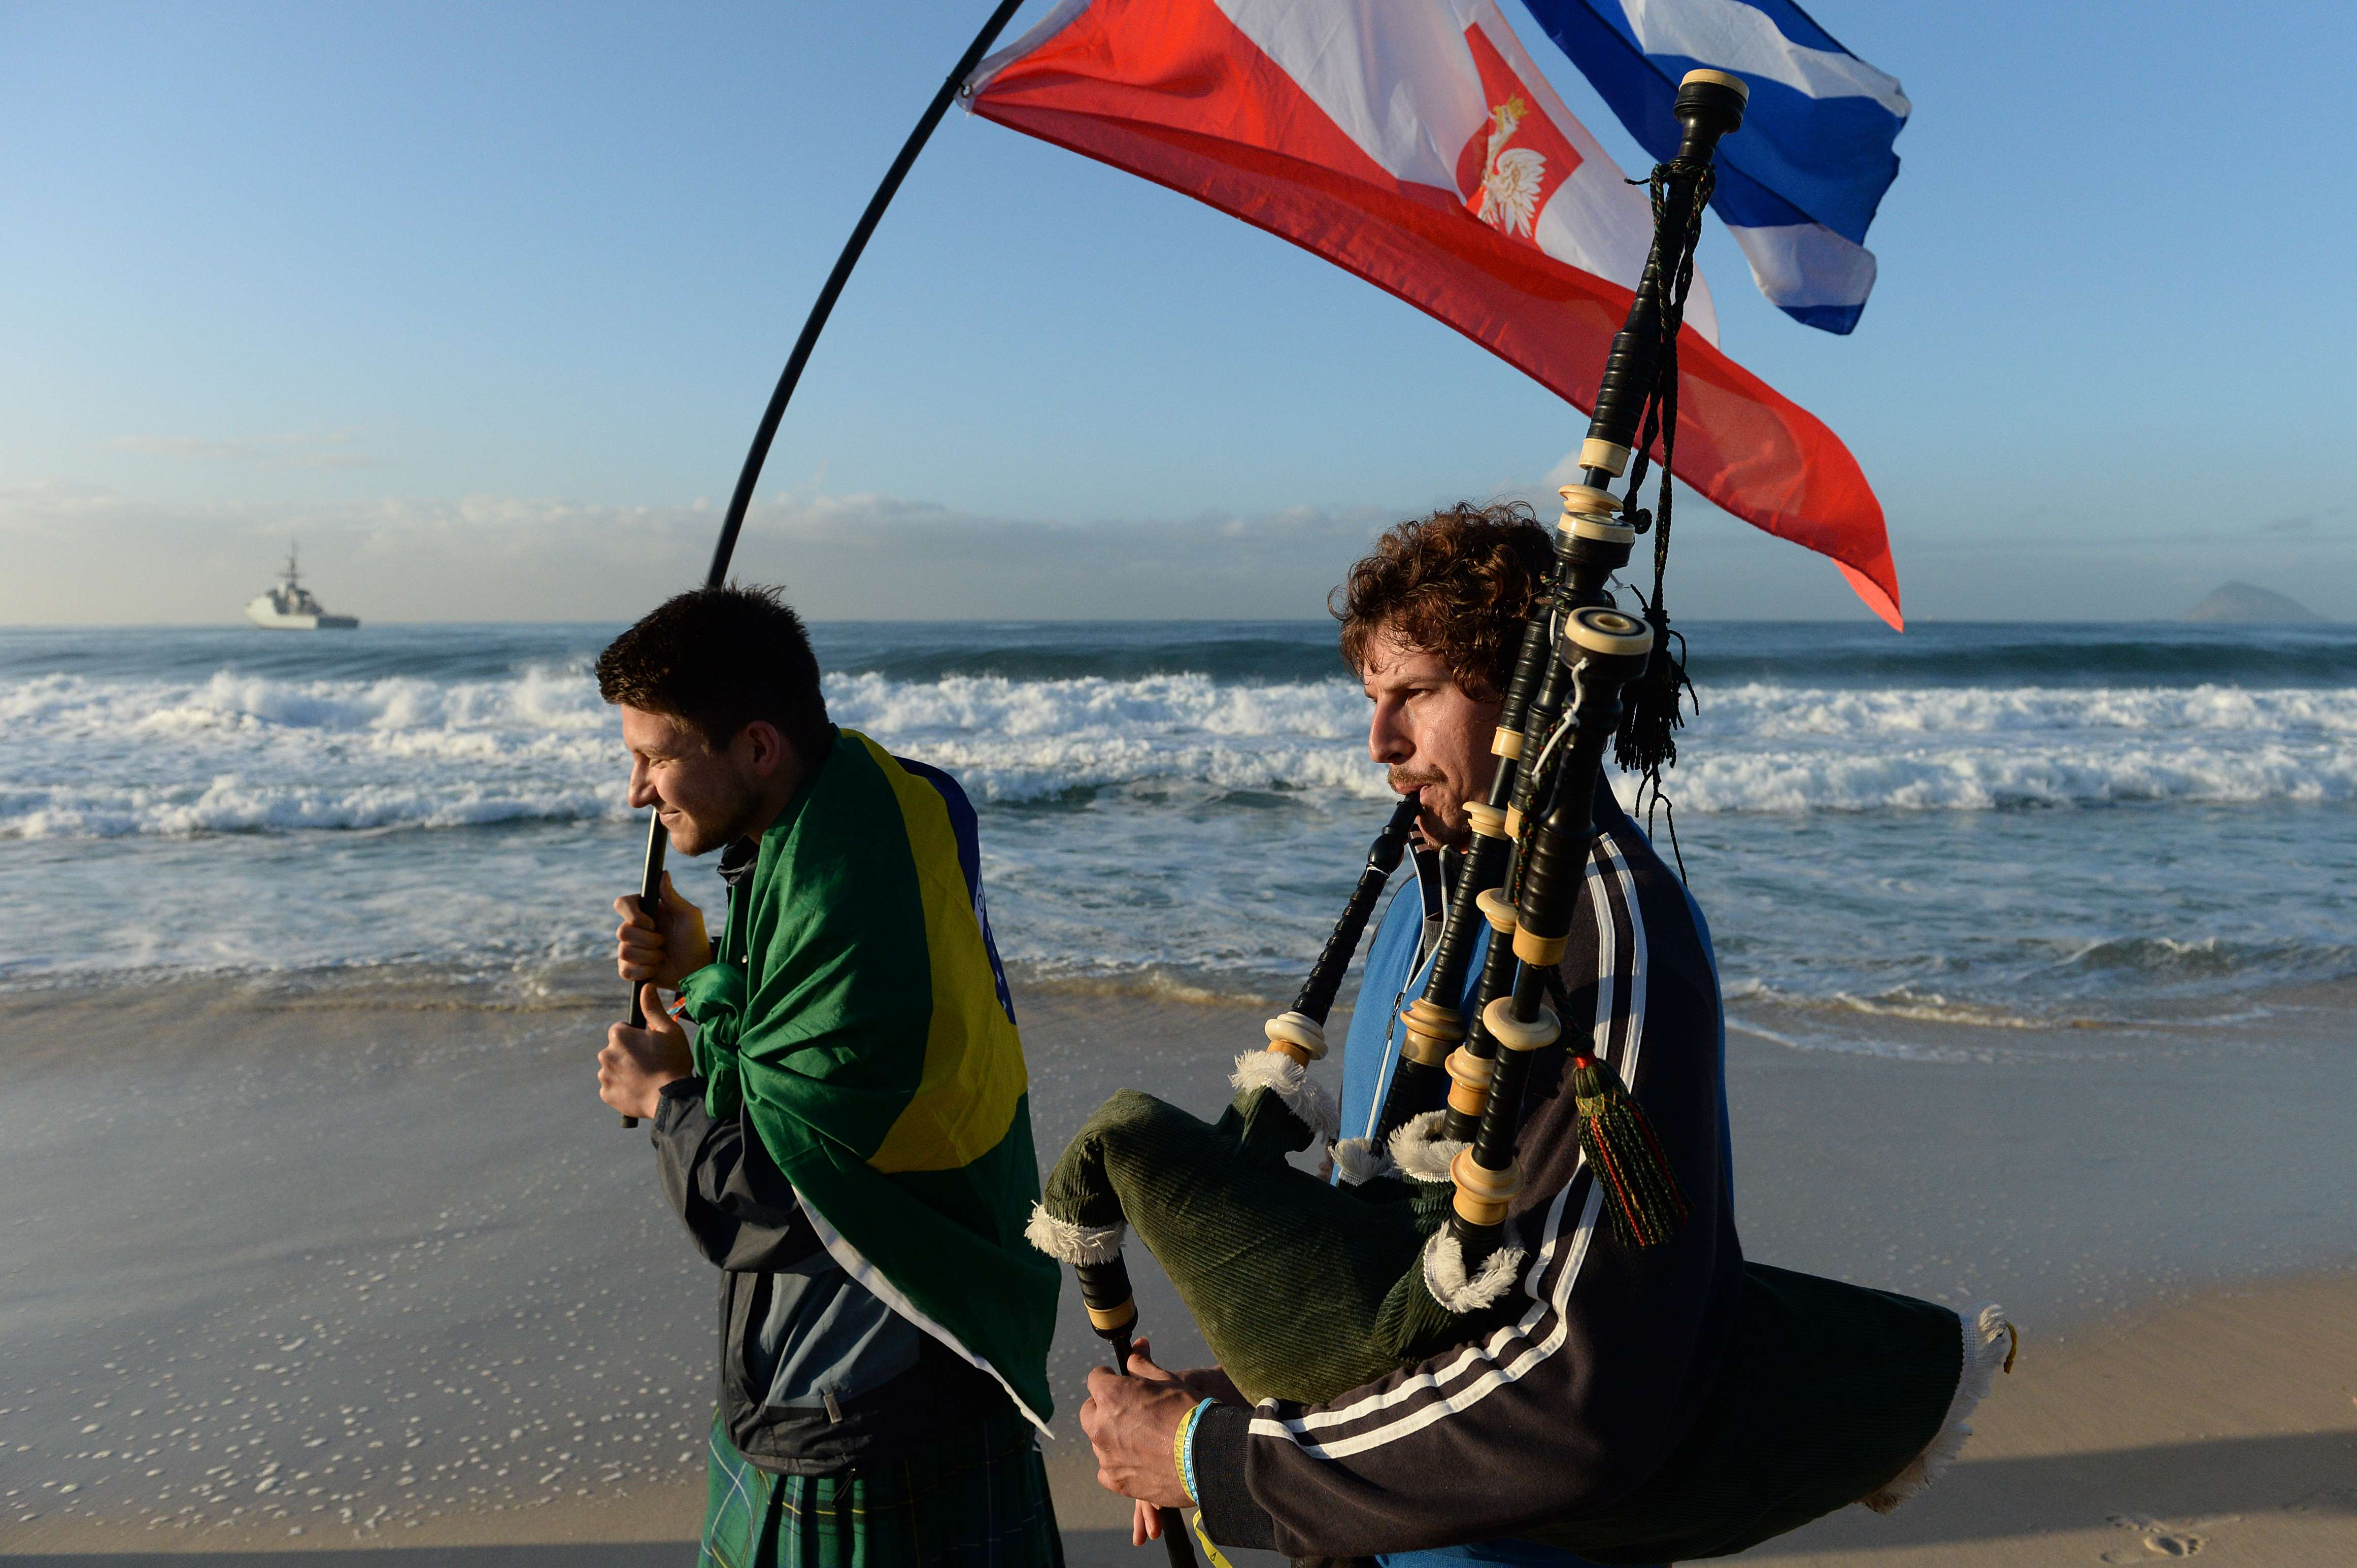 Pilgrims camped out on Copacabana Beach Saturday night, where an overnight vigil also drew millions.